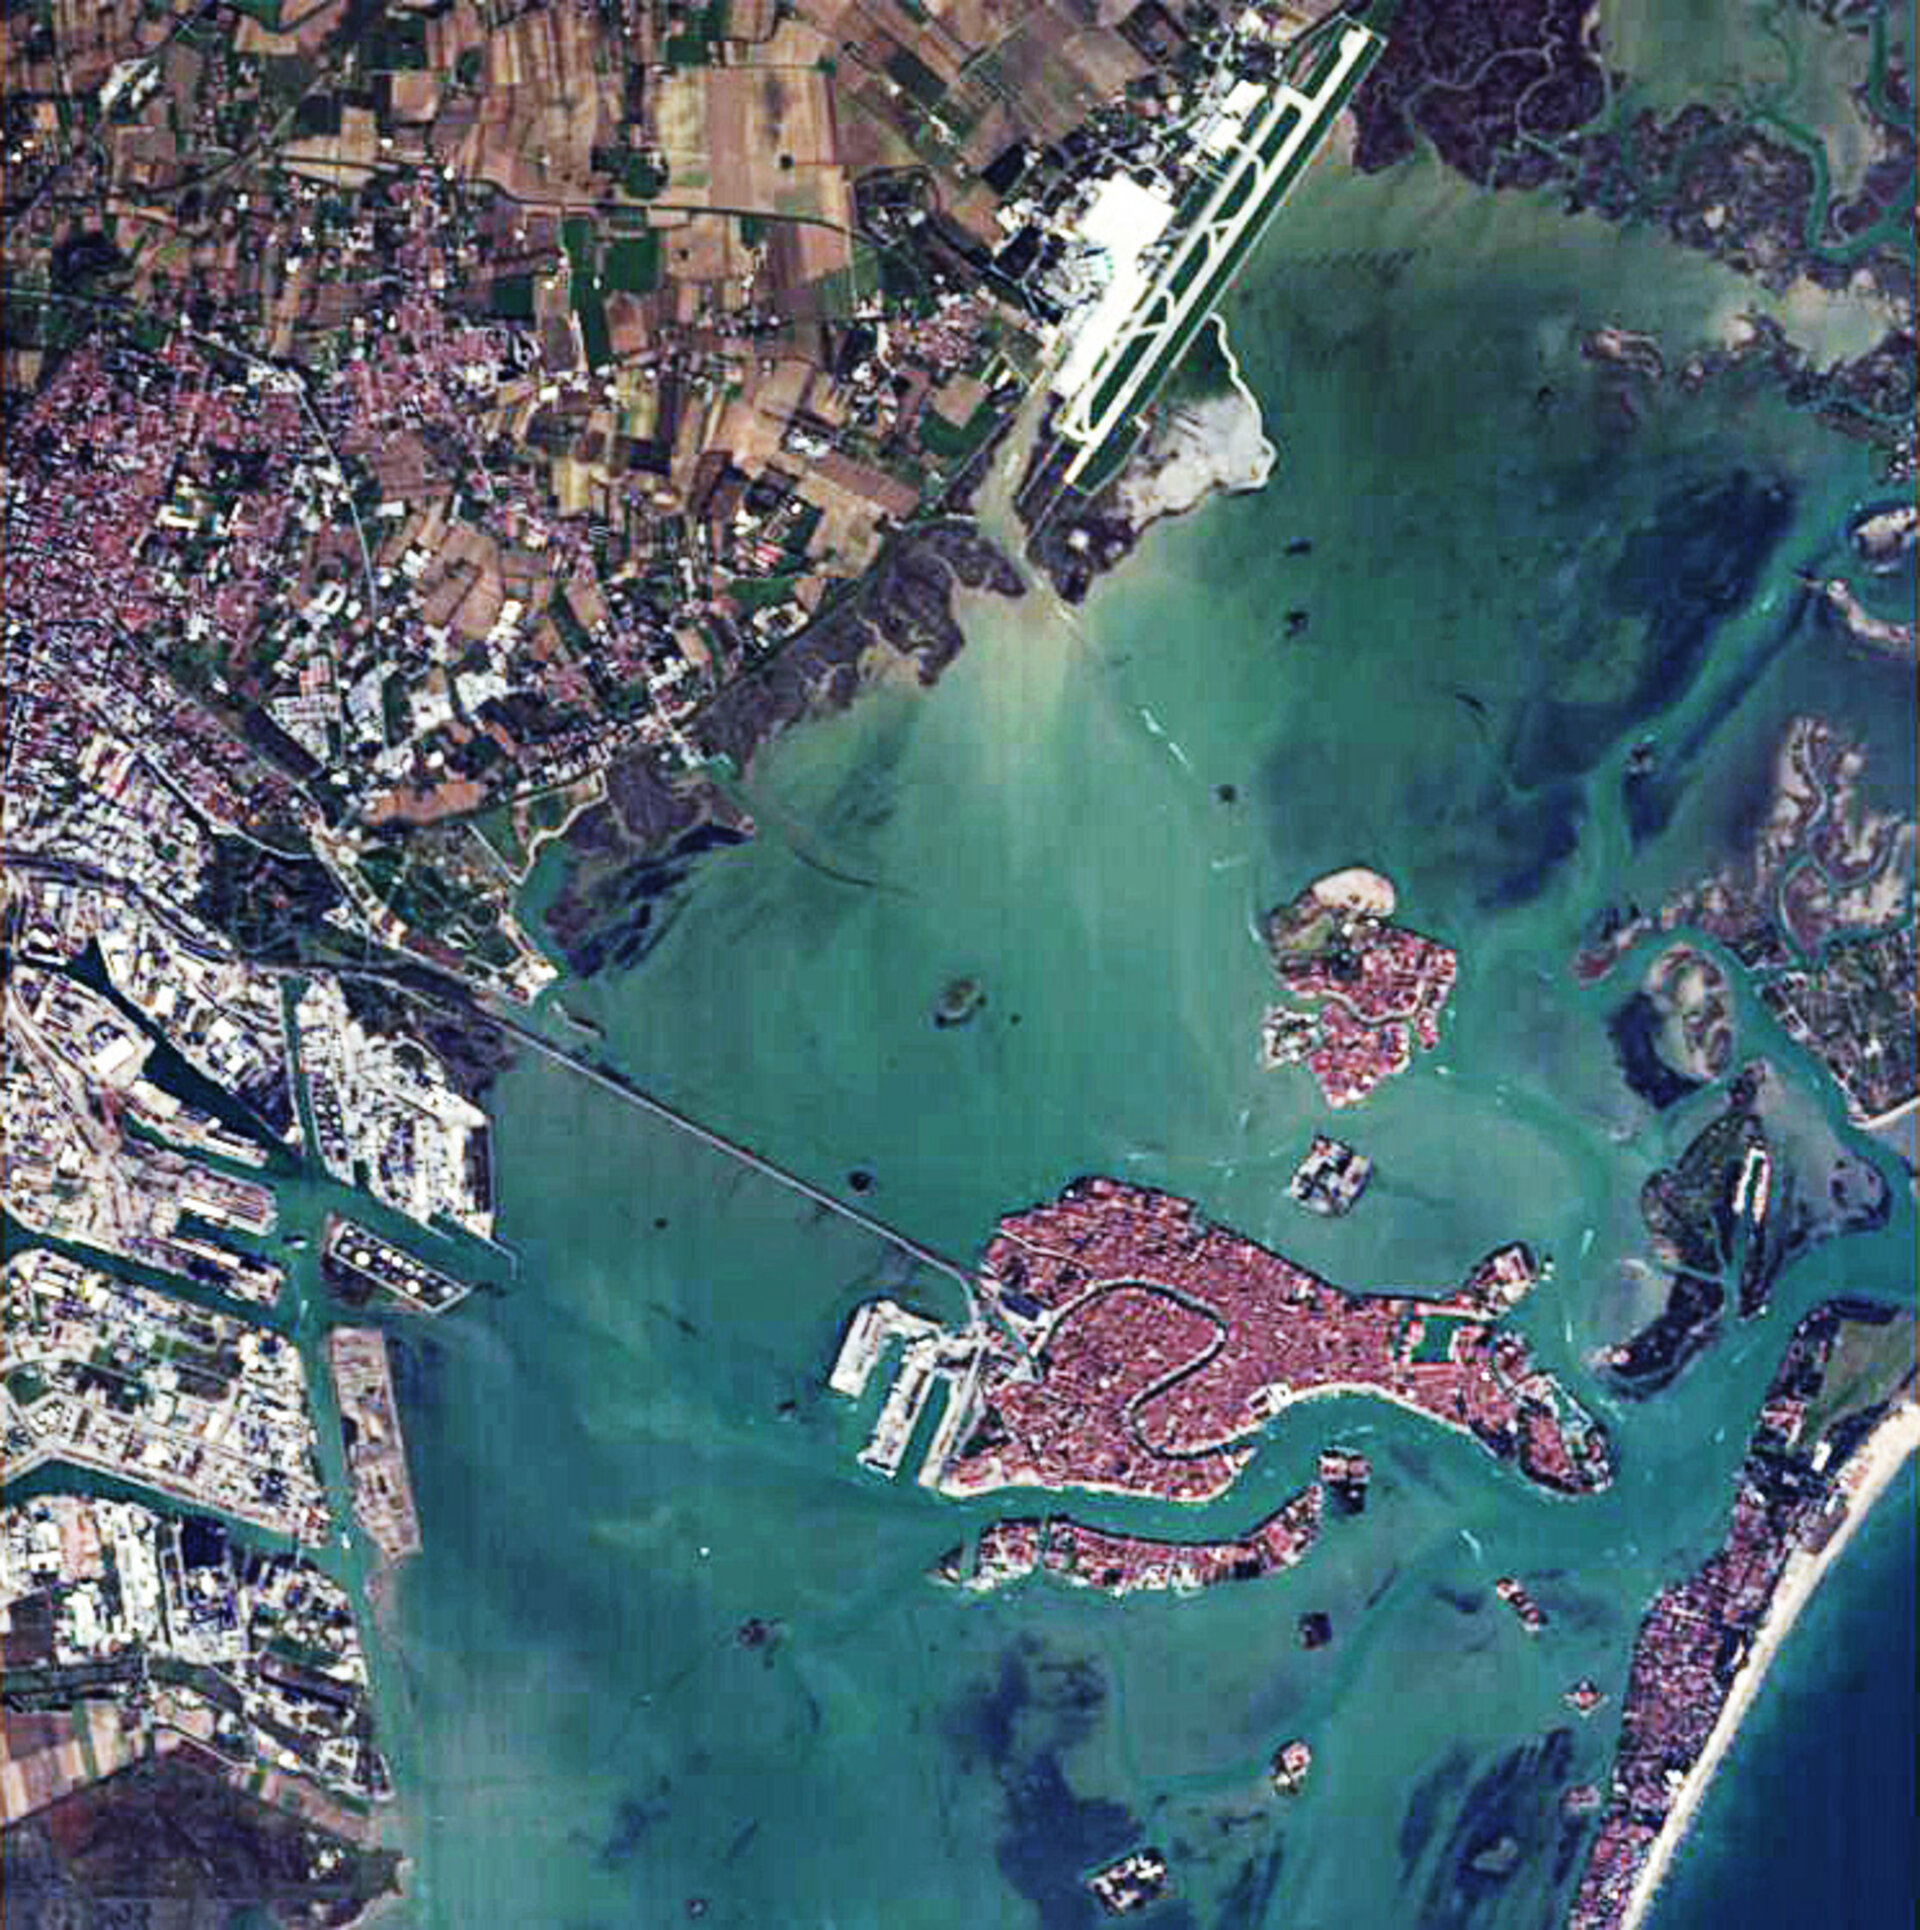 The city of Venice shown by ESA's microsatellite Proba